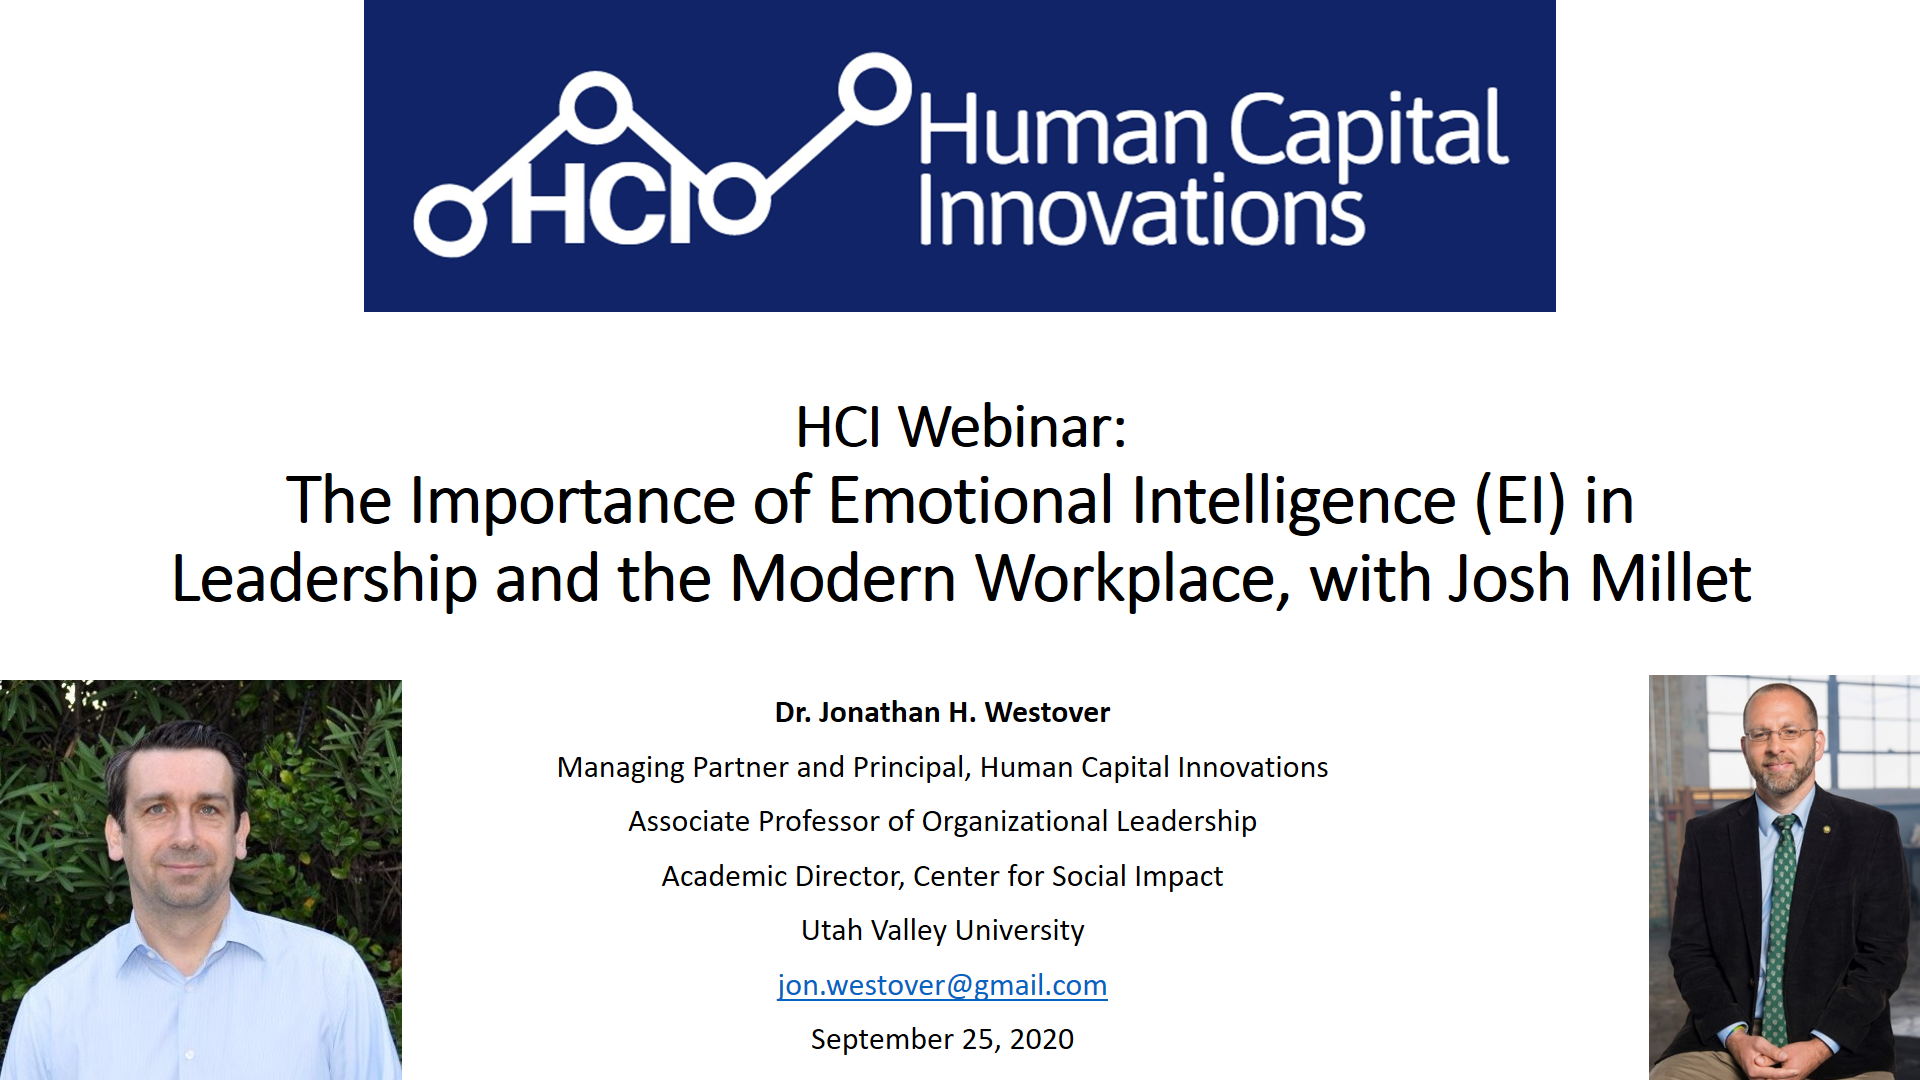 The Importance of Emotional Intelligence (EI) in the Modern Workplace